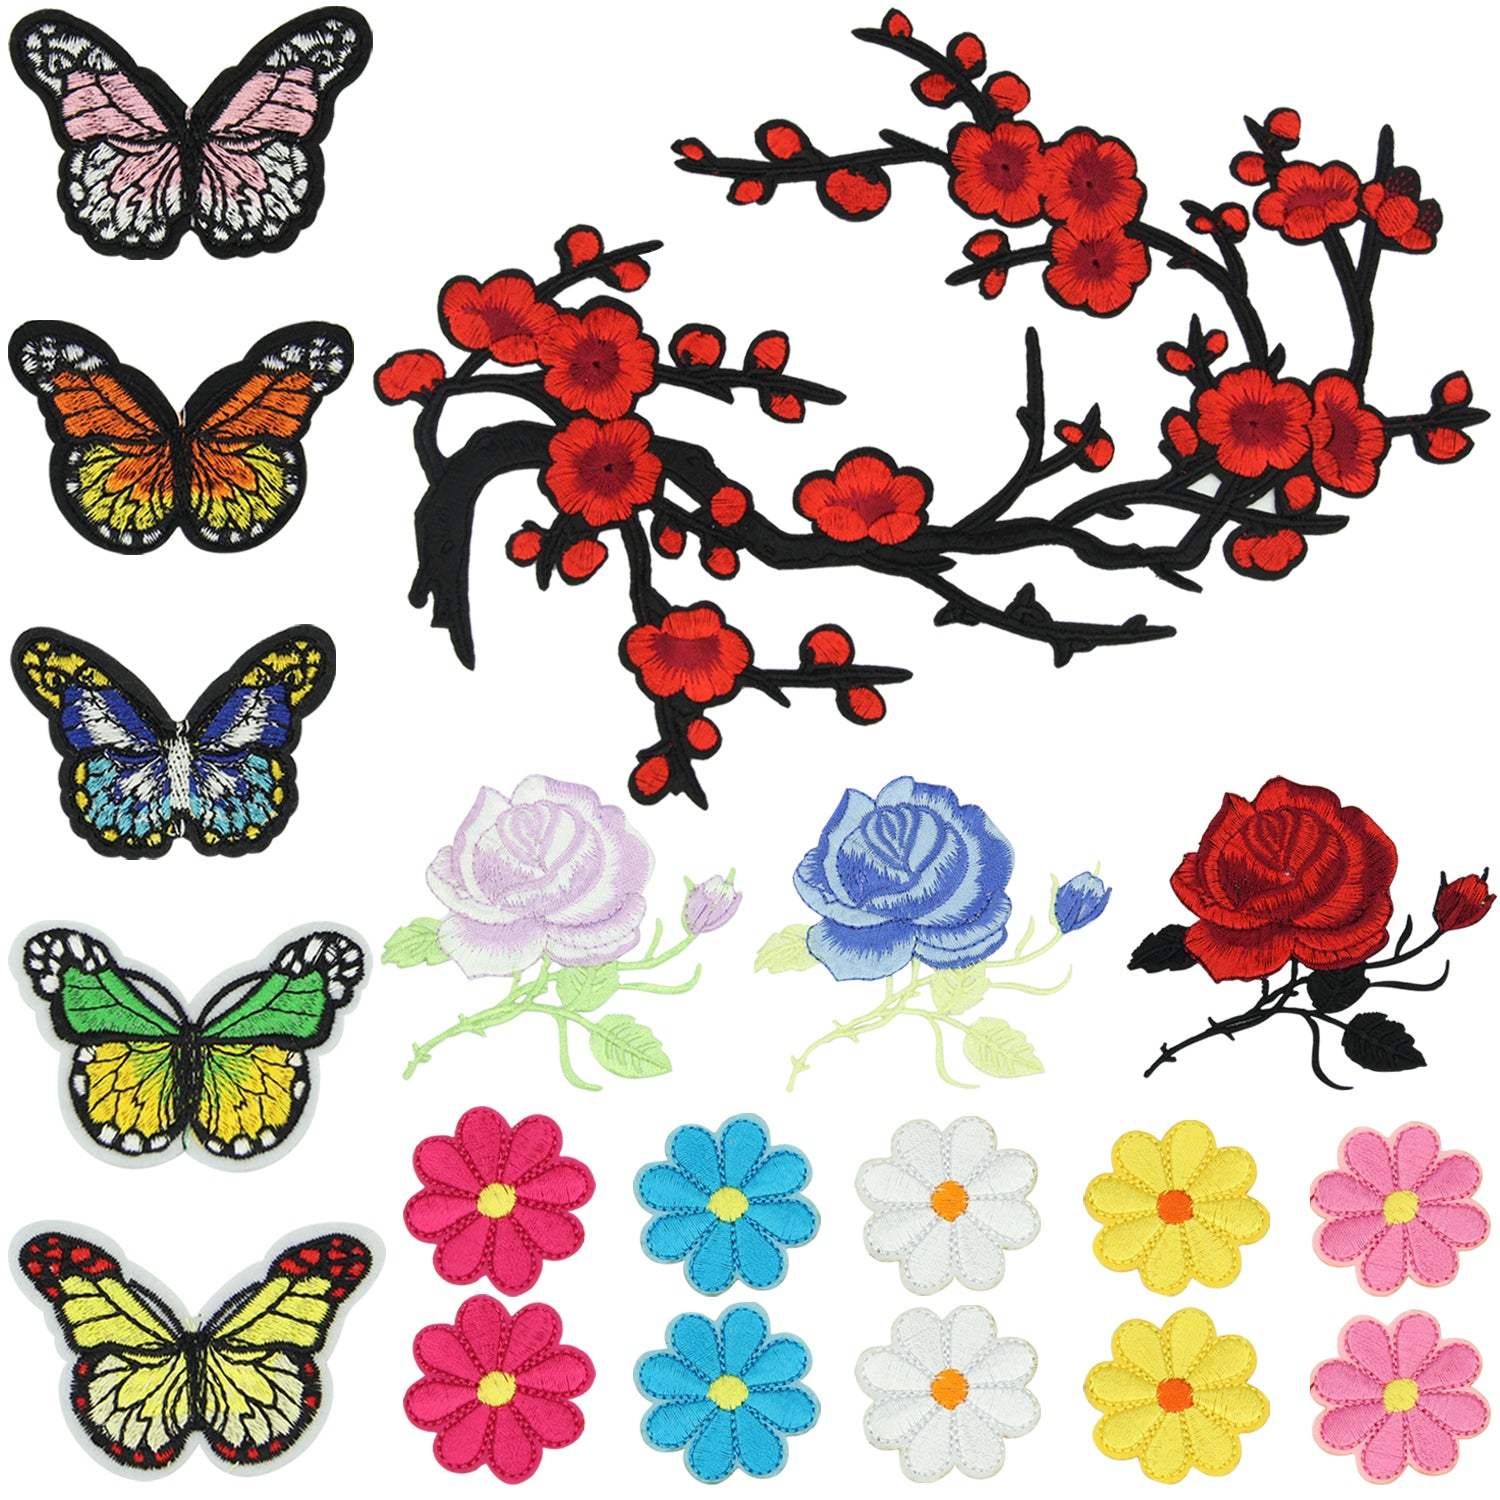 Satkago 19 PCS Flower Butterfly Patch Embroidery Iron-on Clothes Patches for T-shirt Jeans